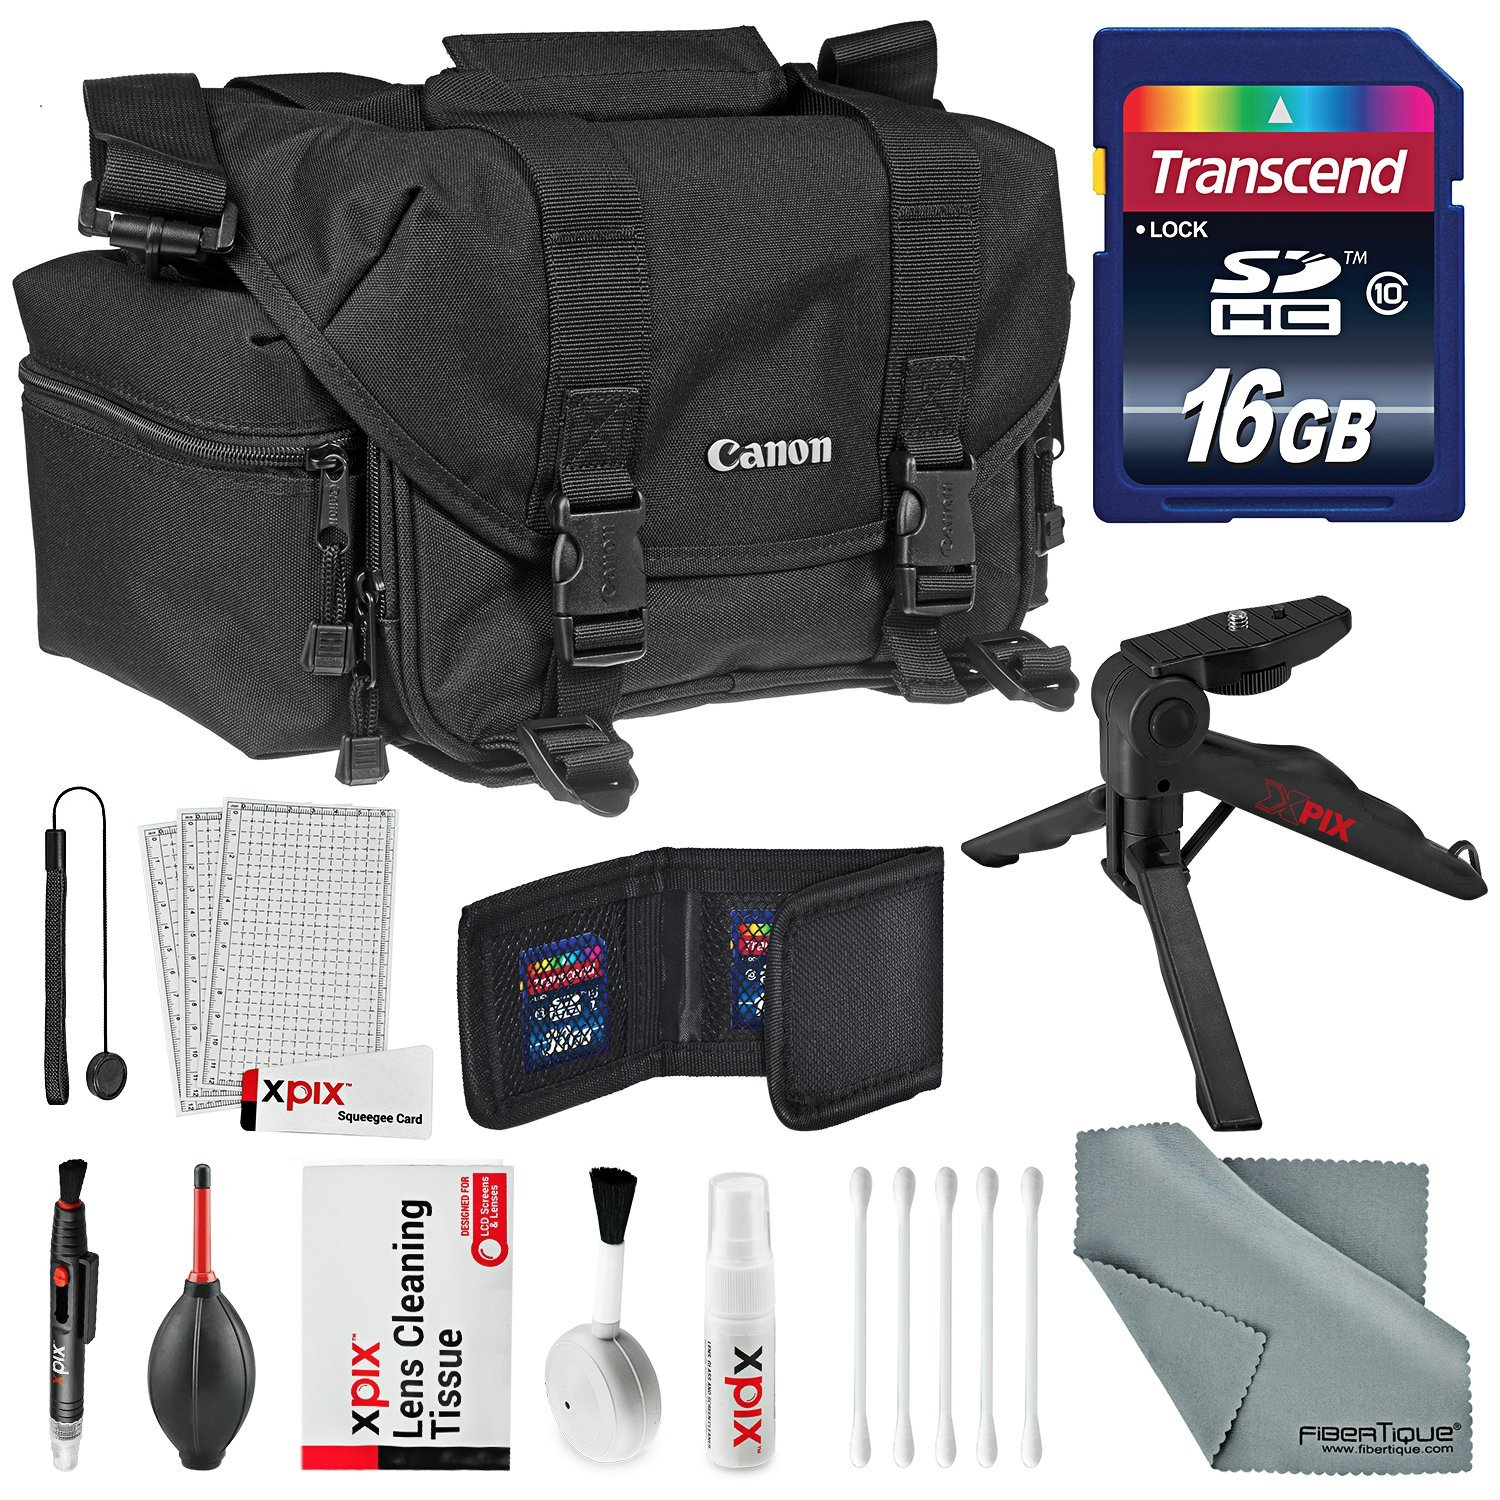 Canon Gadget Bag 2400 for EOS SLR Cameras Accessory Bundle with 16GB SD Card + Table top Tripod + Memory Card Wallet + Xpix Deluxe Cleaning Kit